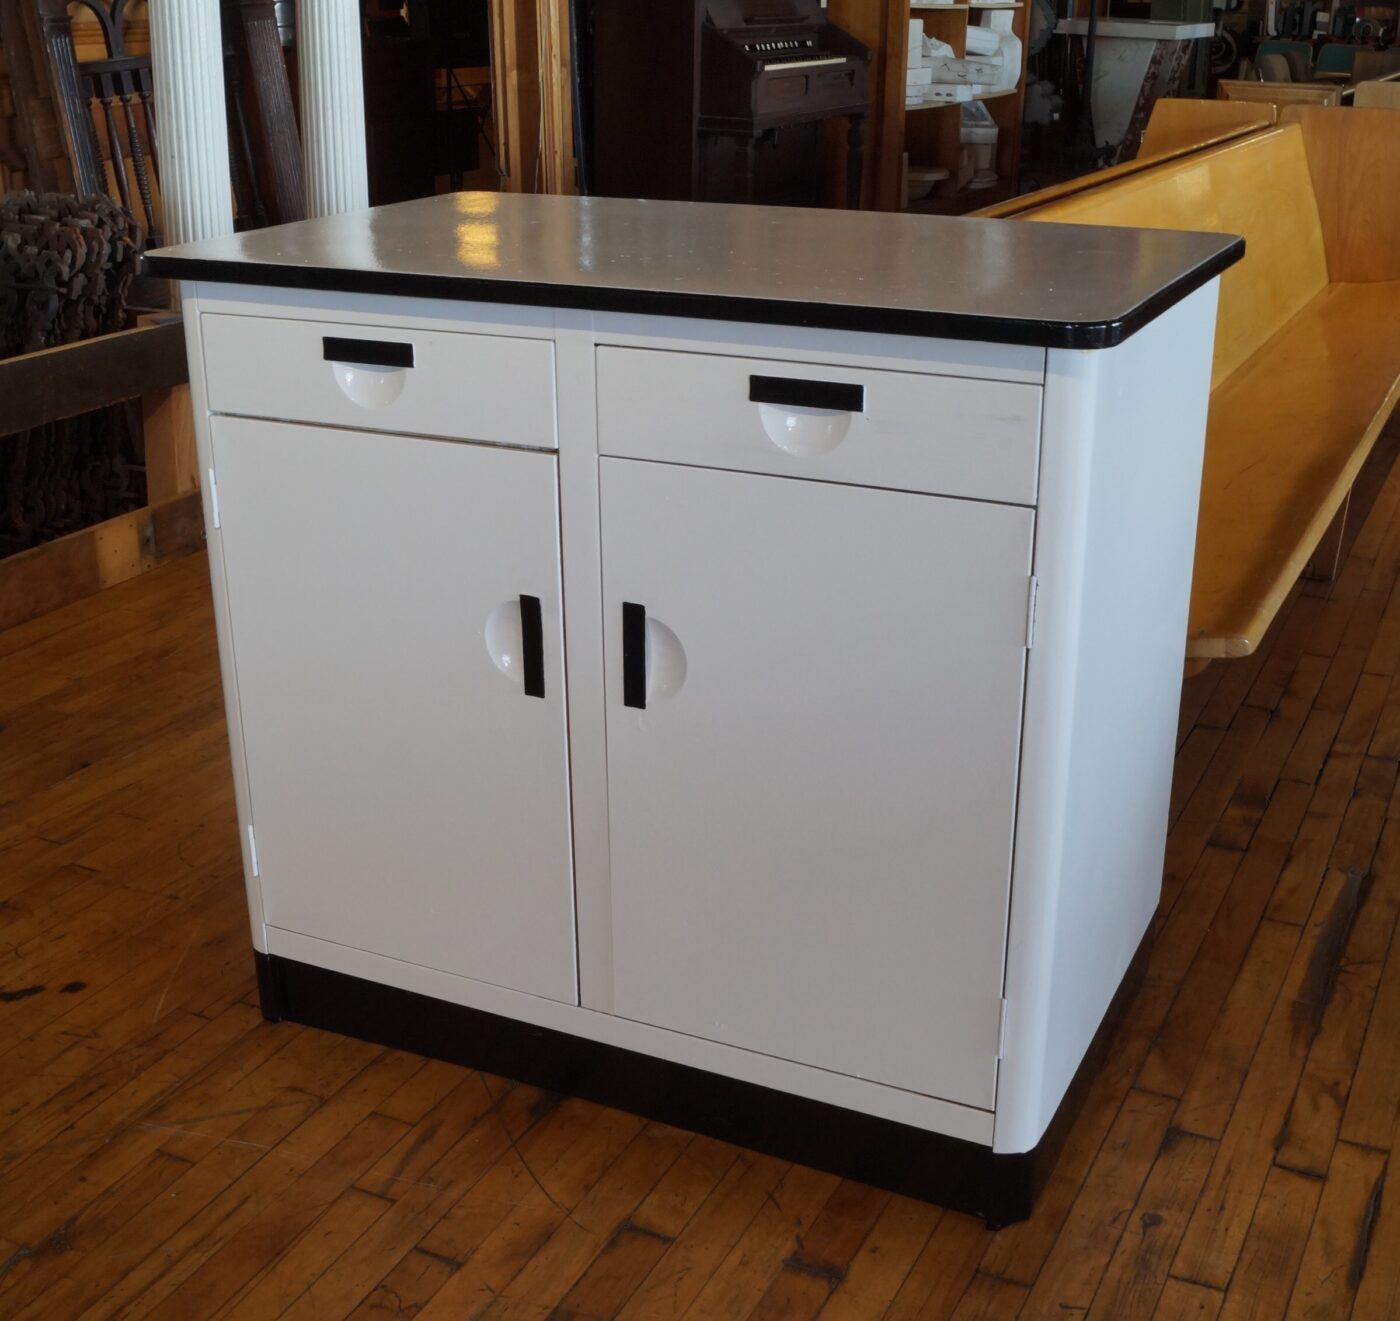 Vintage Black and White Metal Kitchen Cabinet - Salvage One